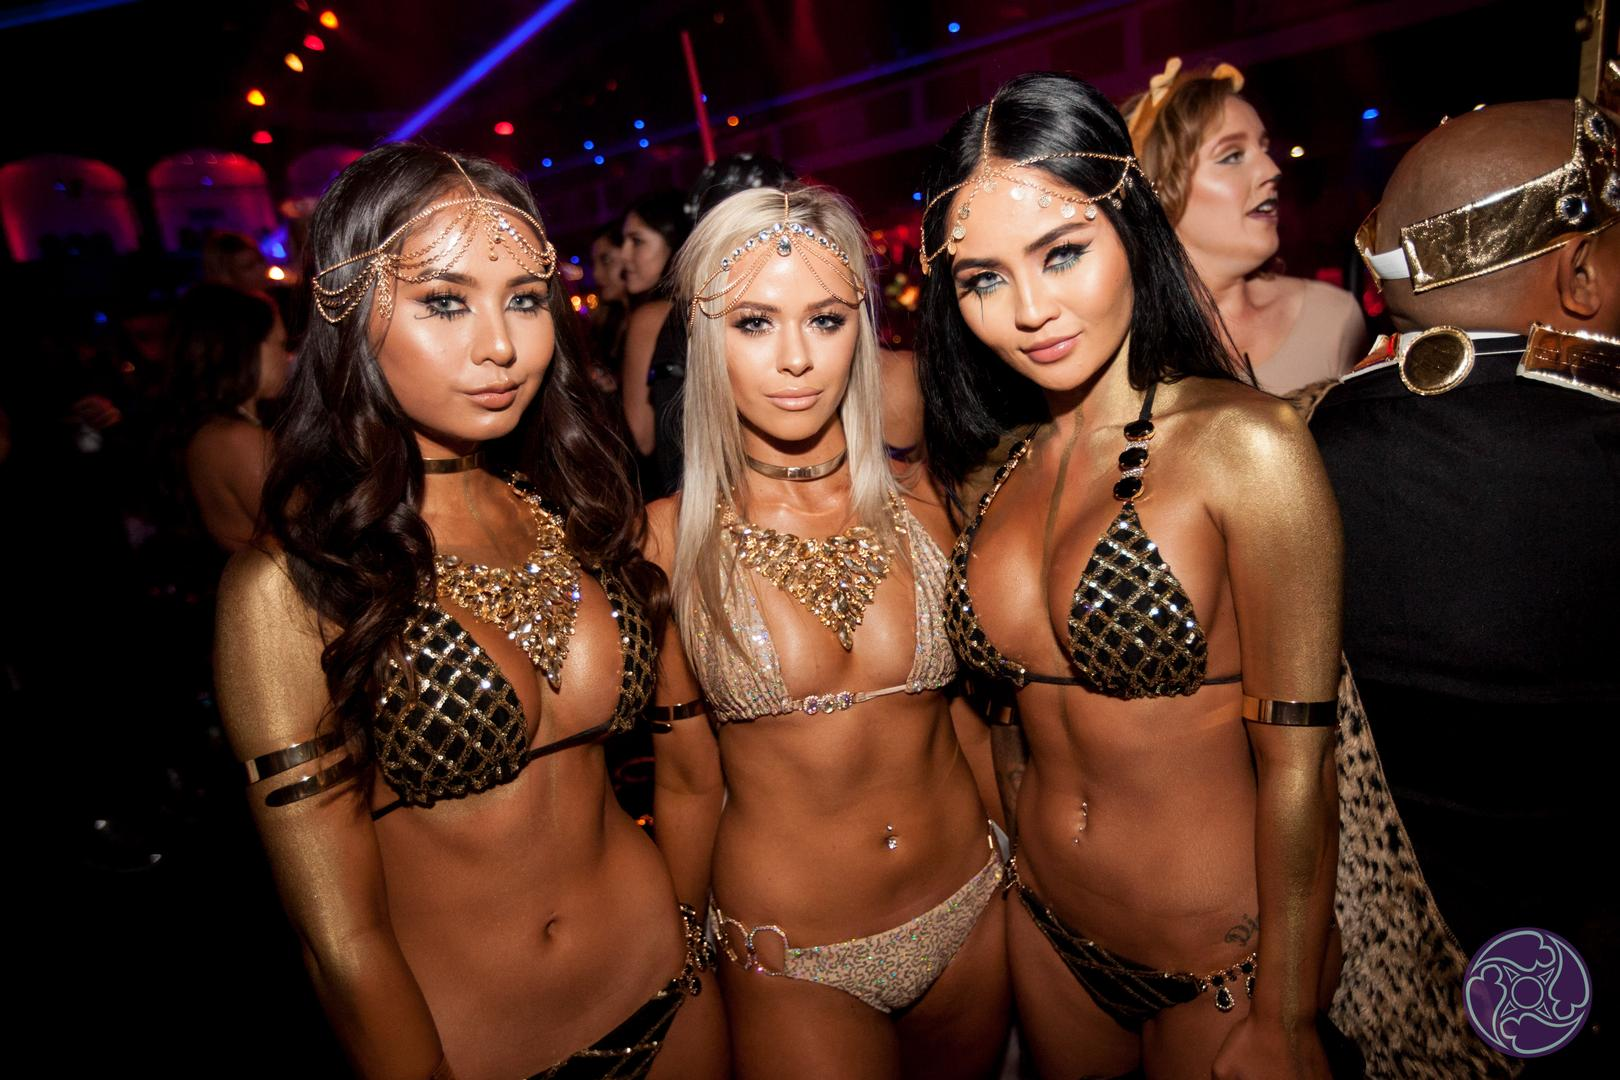 Tickets and Tables for 2016 Maxim Halloween Party at VIP Exclusives